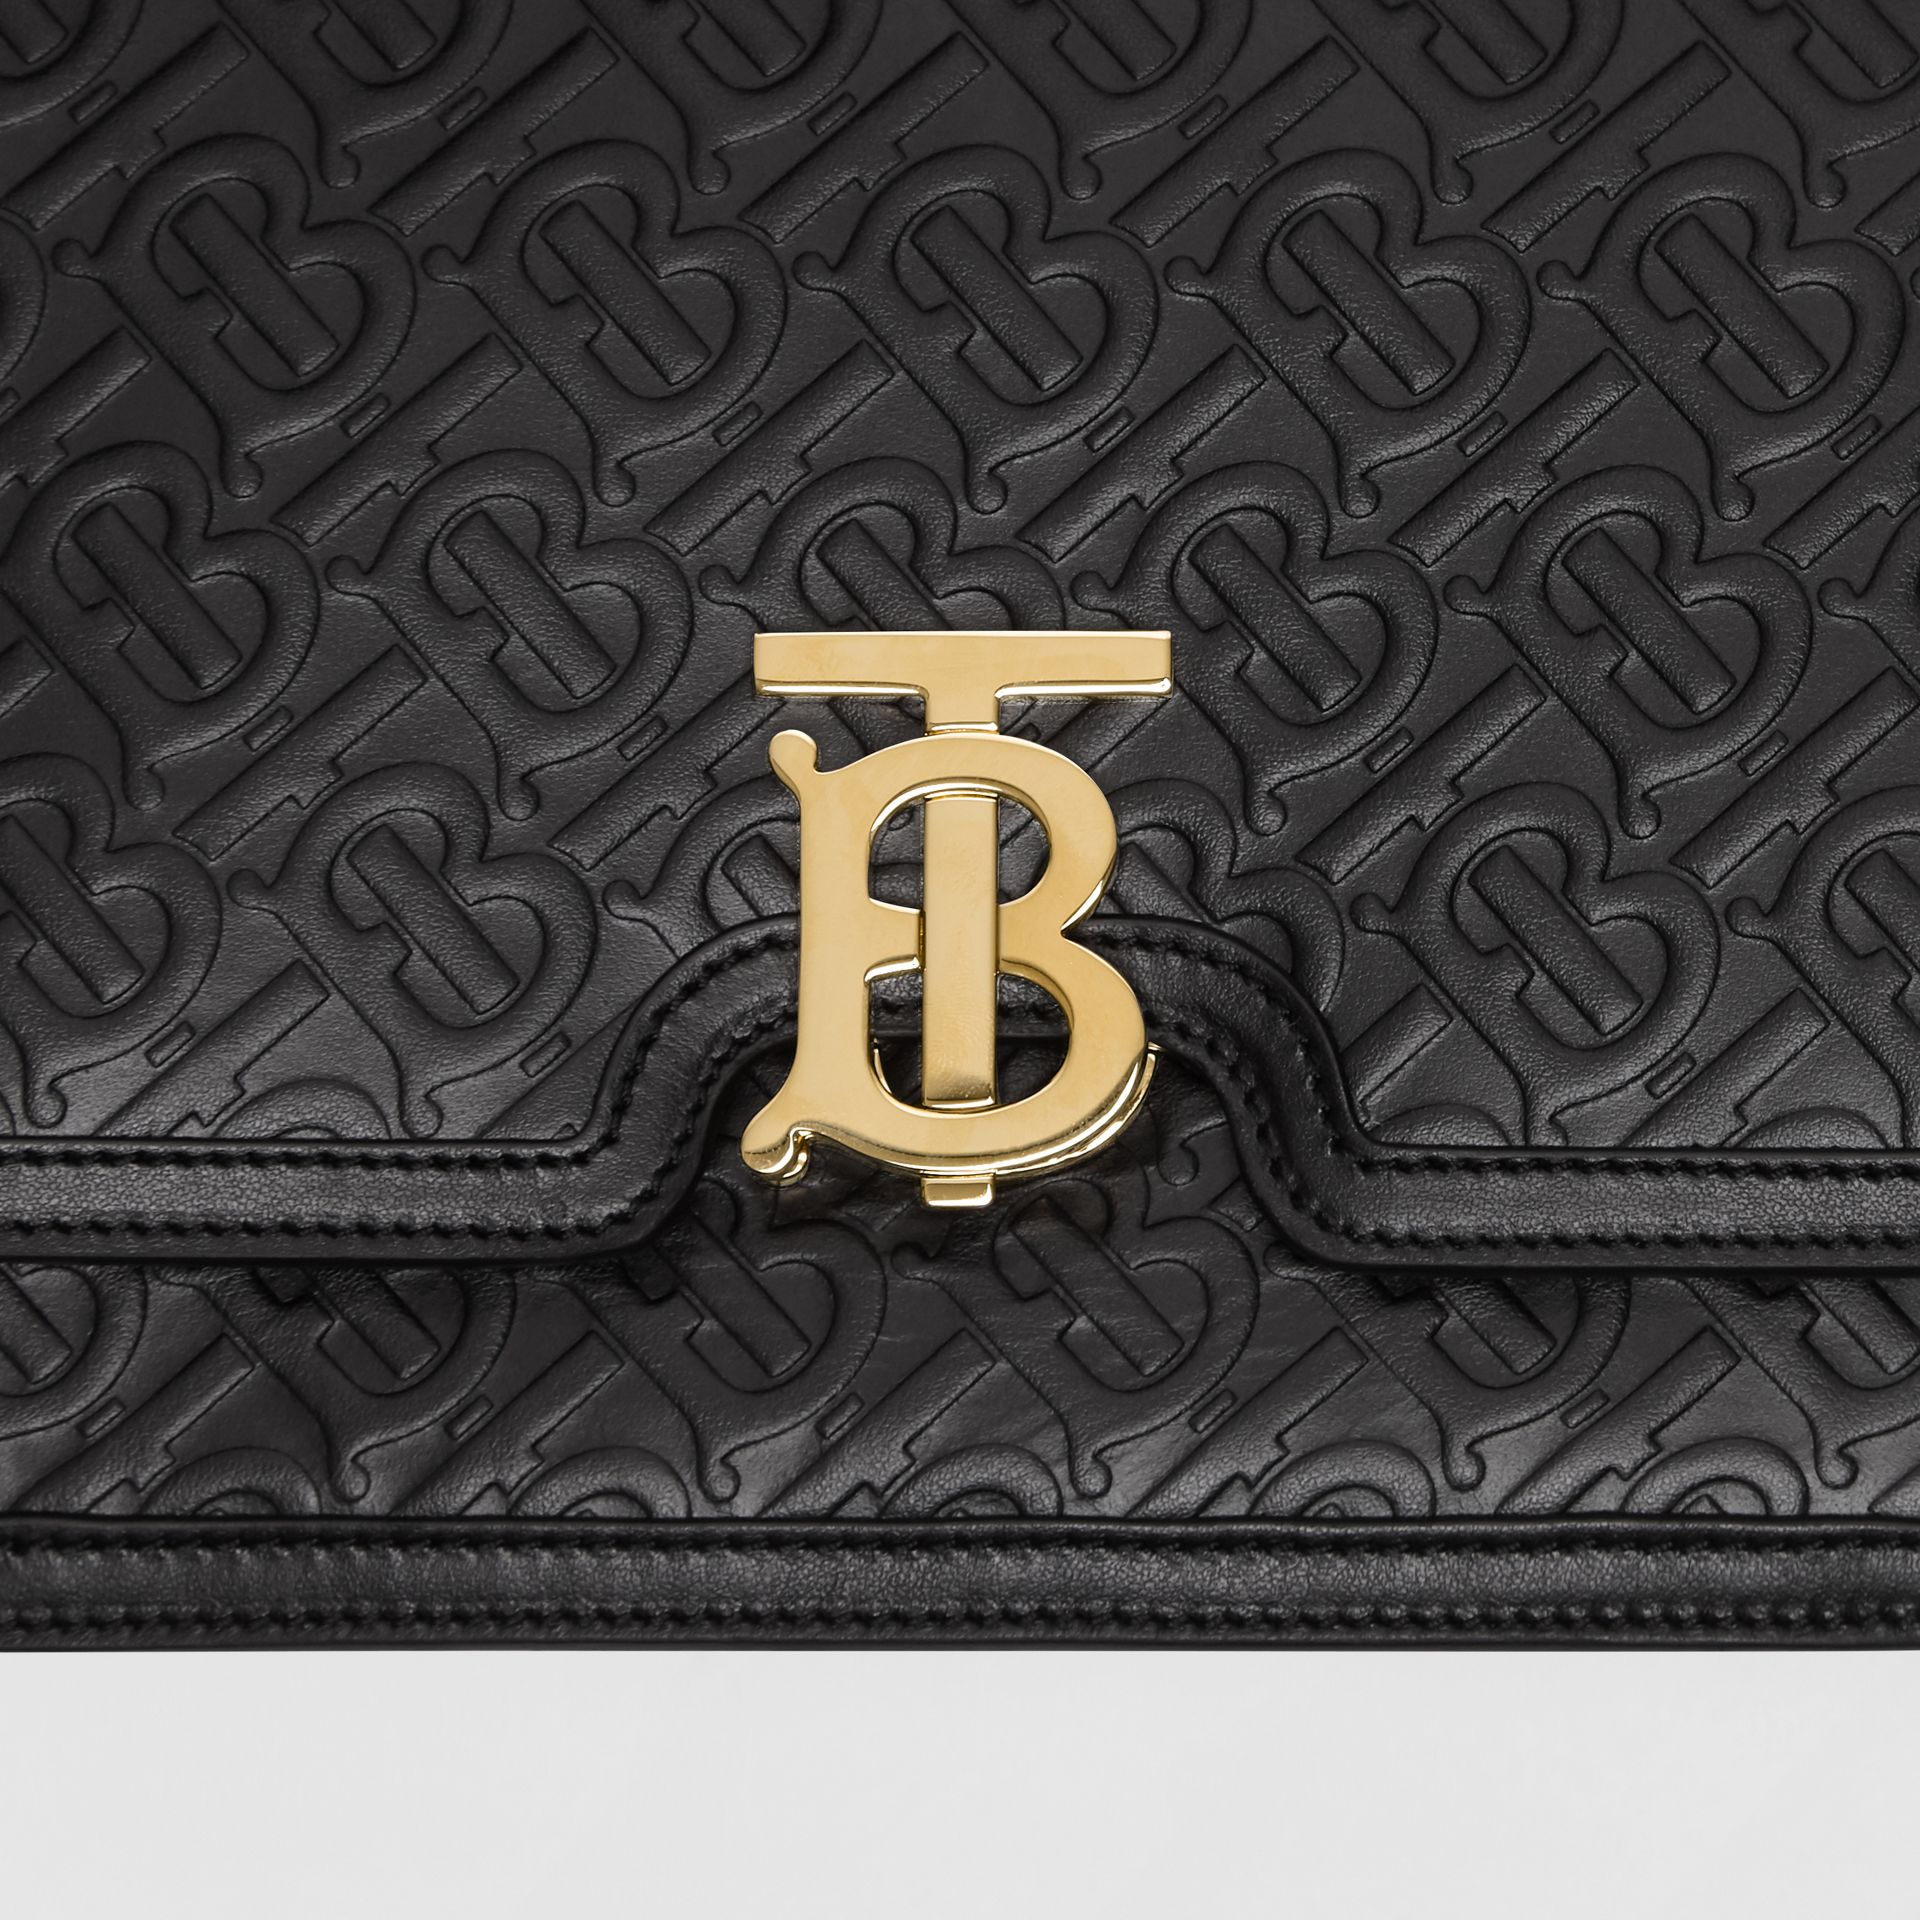 Medium Monogram Leather TB Bag in Black - Women | Burberry United Kingdom - gallery image 1